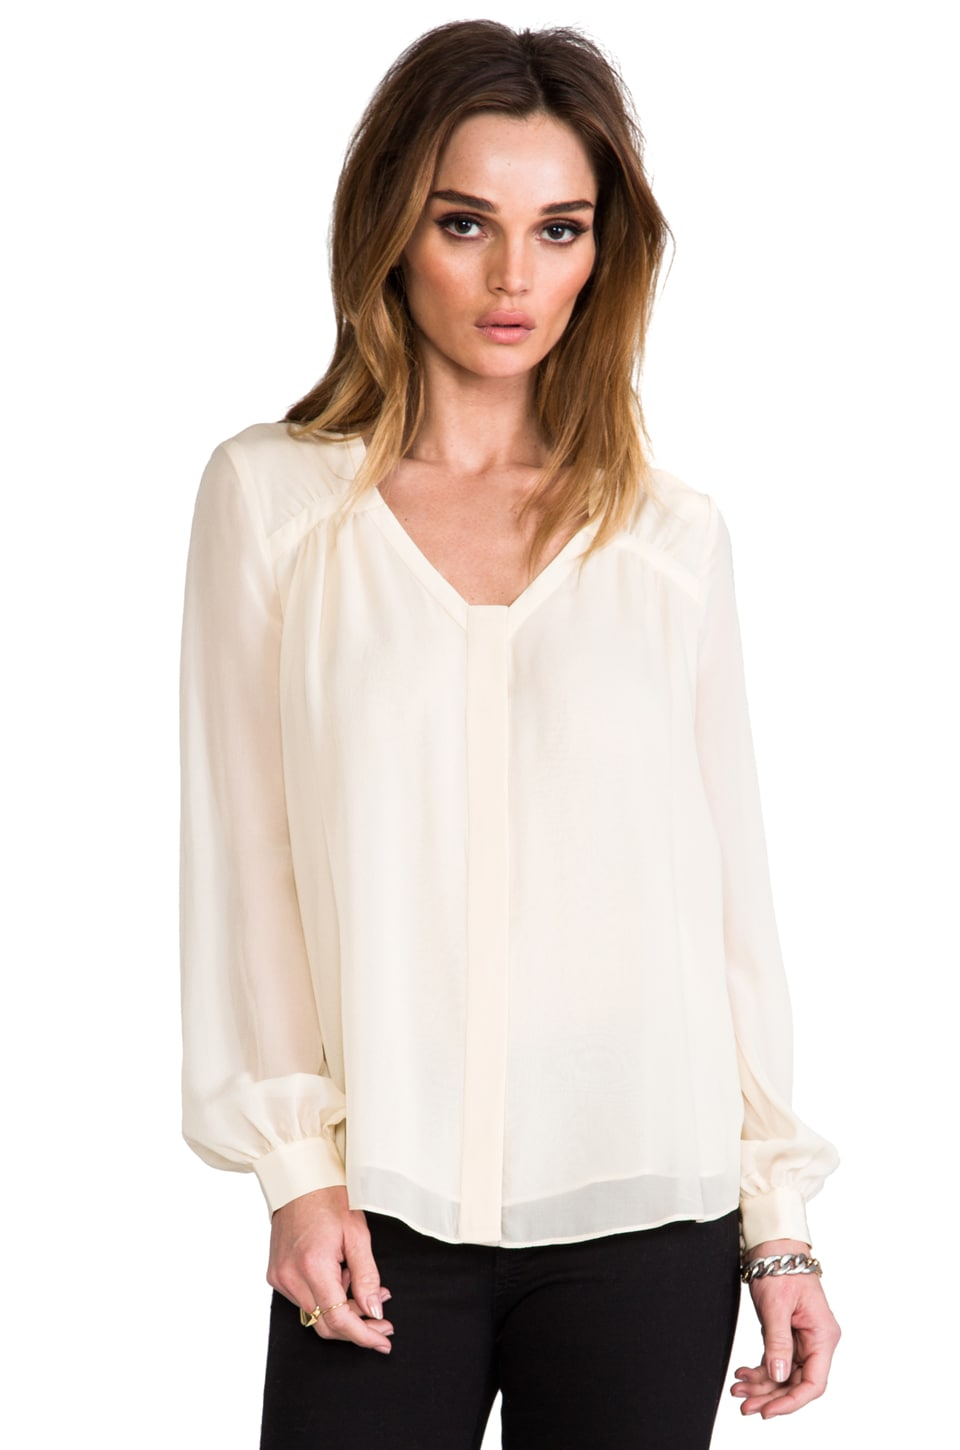 Diane von Furstenberg Lane Top in Sesame Seed